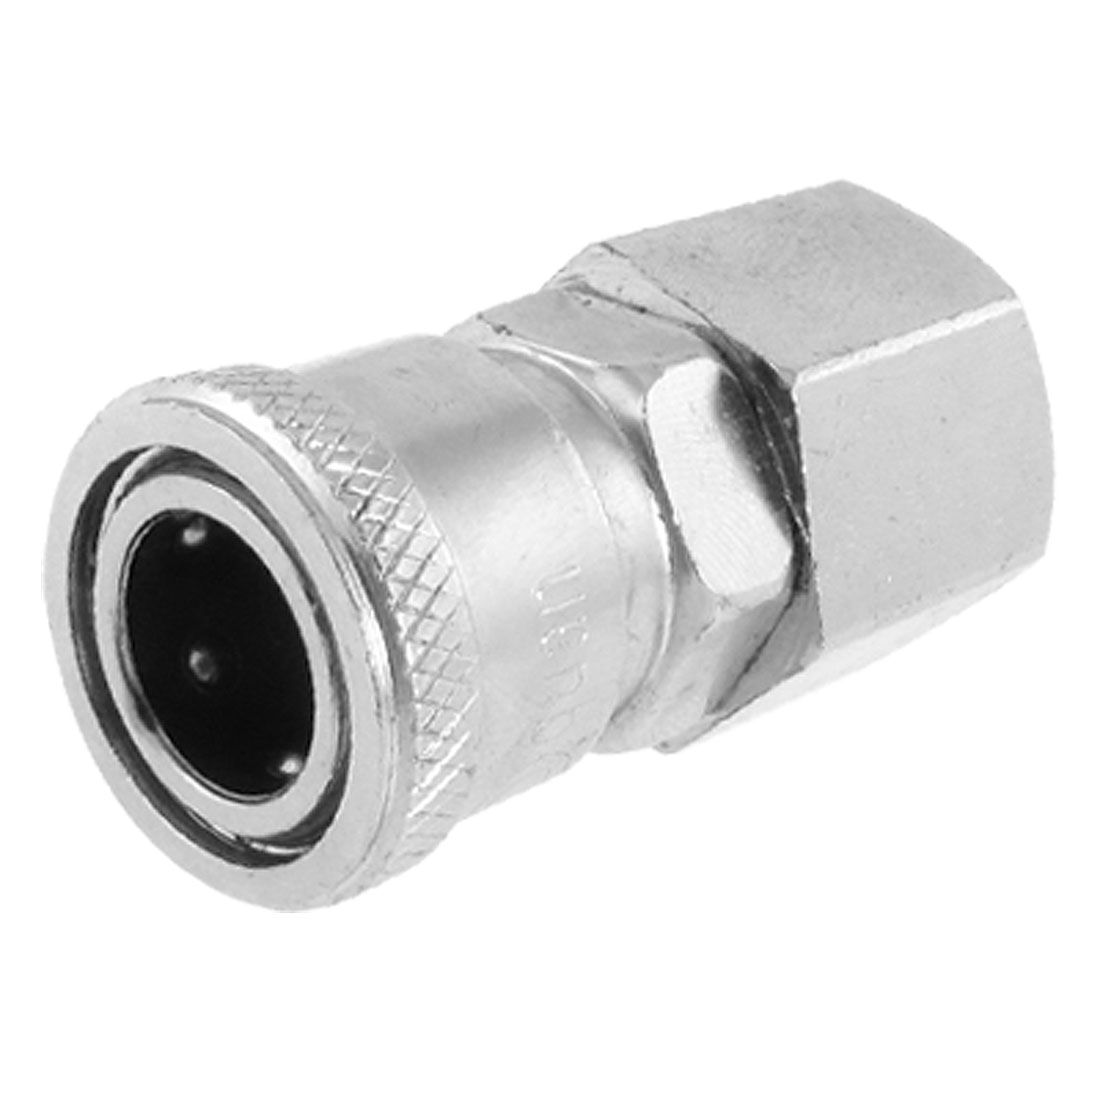 "40SF Female Thread Pneumatic Quick Disconnect Coupler Socket for 47/64"" Piping"